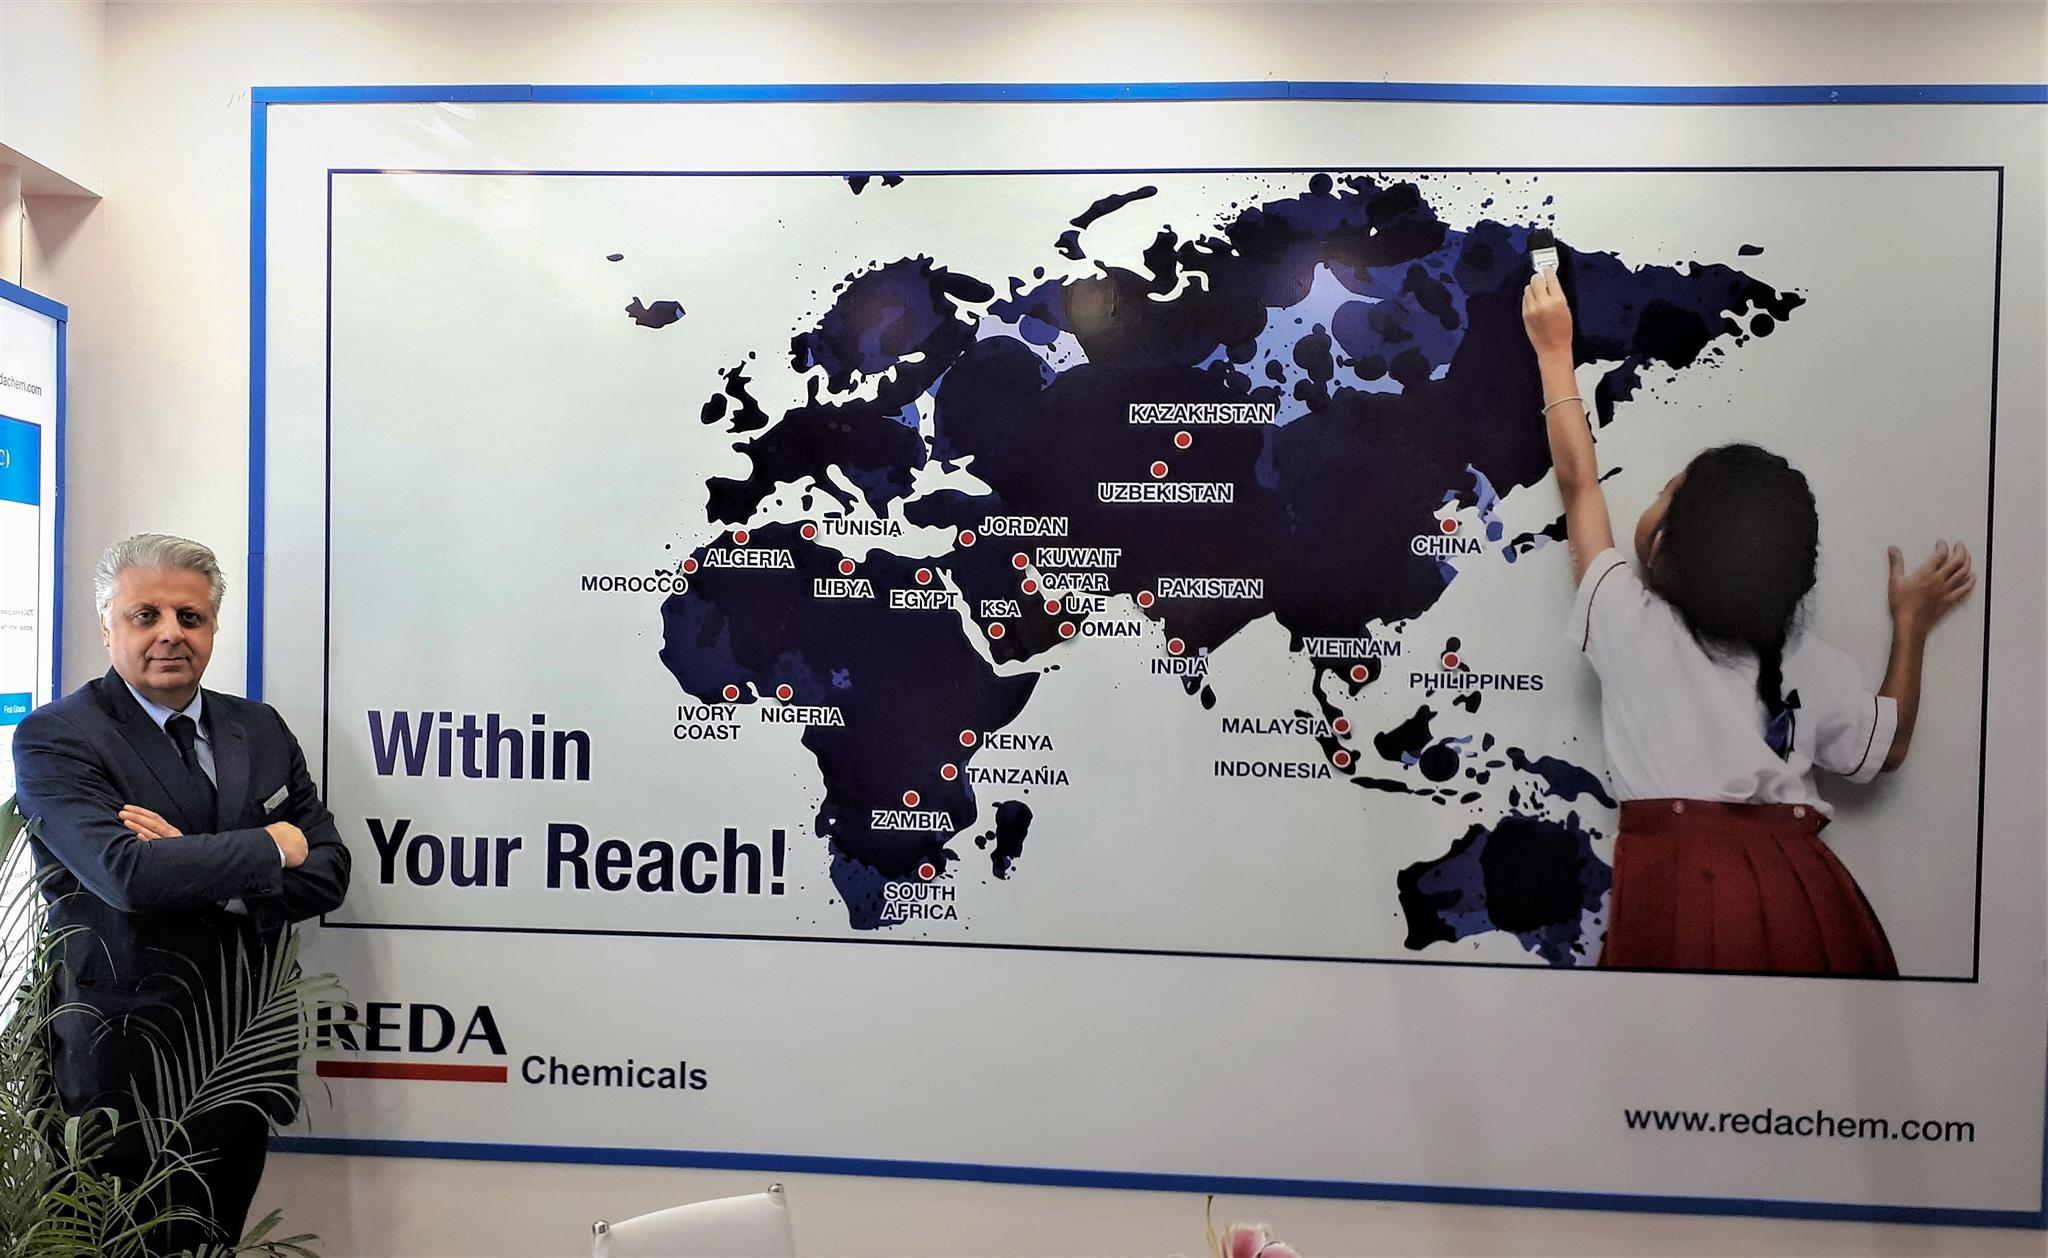 The United Nations of REDA – REDA Chemicals